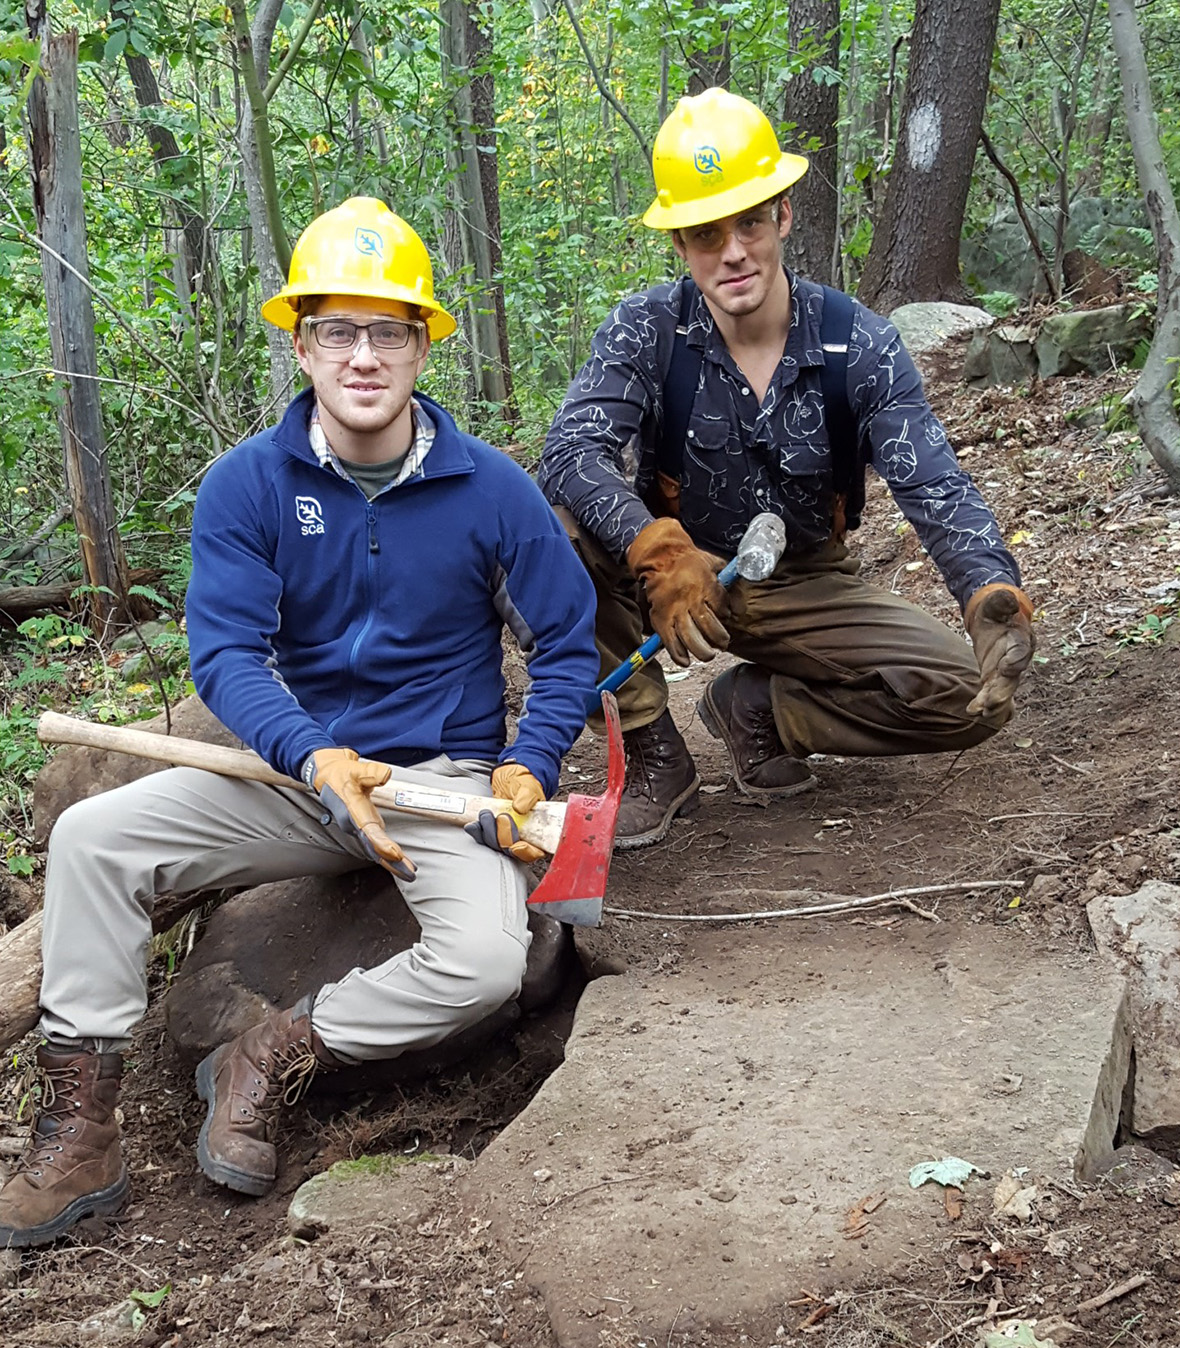 Caleb (right) with one of his SCA Leader crewmates undertaking major trail work on the Potomac Heritage National Trail in Pennsylvania's Laurel highlands.